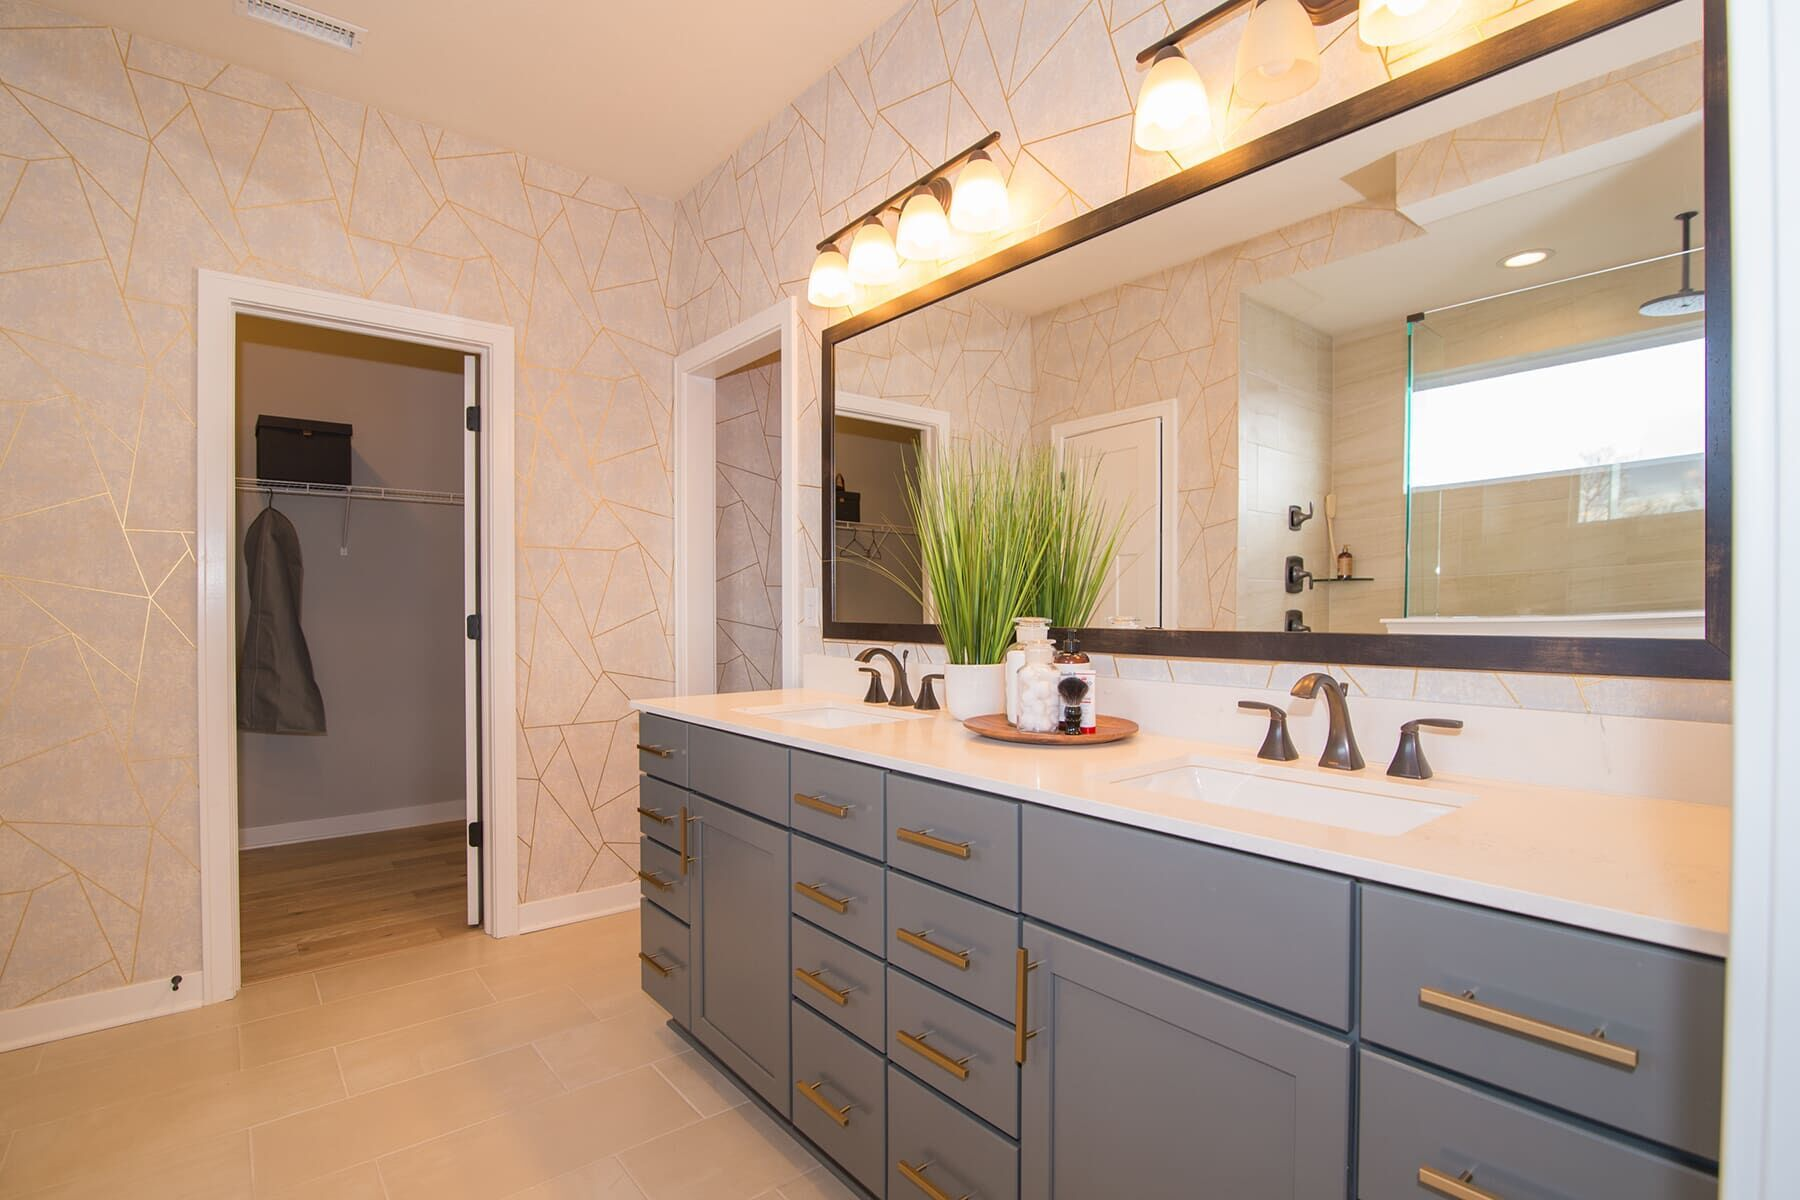 Bathroom featured in the Cascade C Slab By M/I Homes in Indianapolis, IN